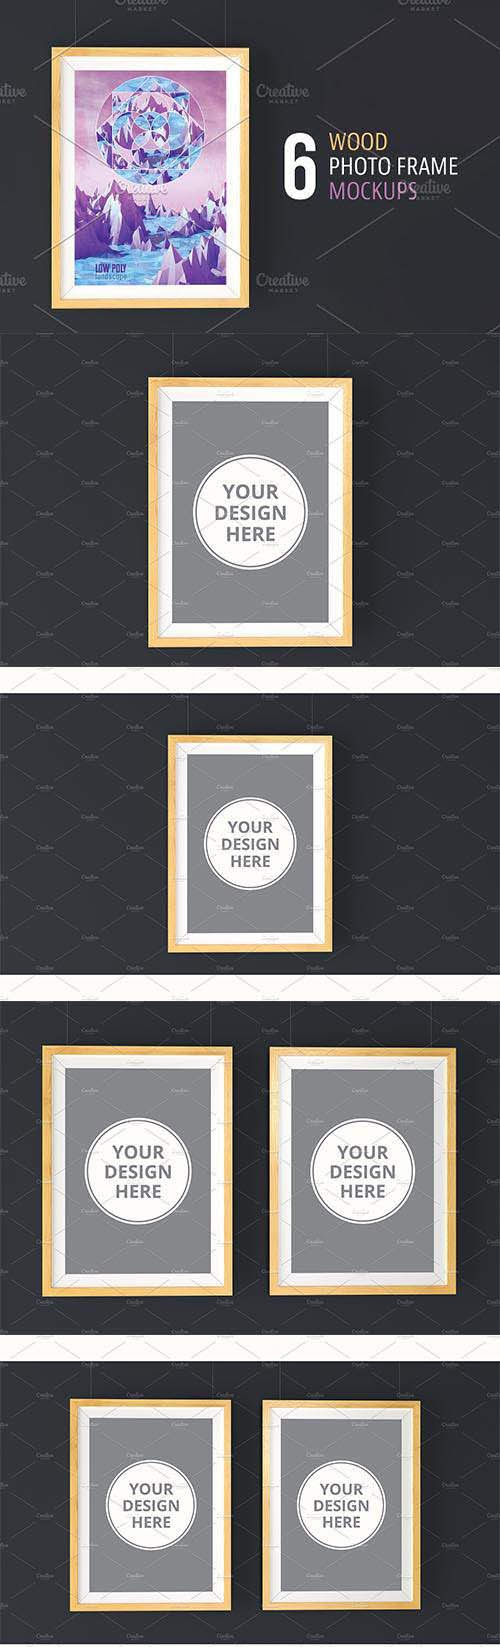 CreativeMarket  6 Wood Photo Frame Mockups 2219718 Free Download http://ift.tt/2Ge1XDu